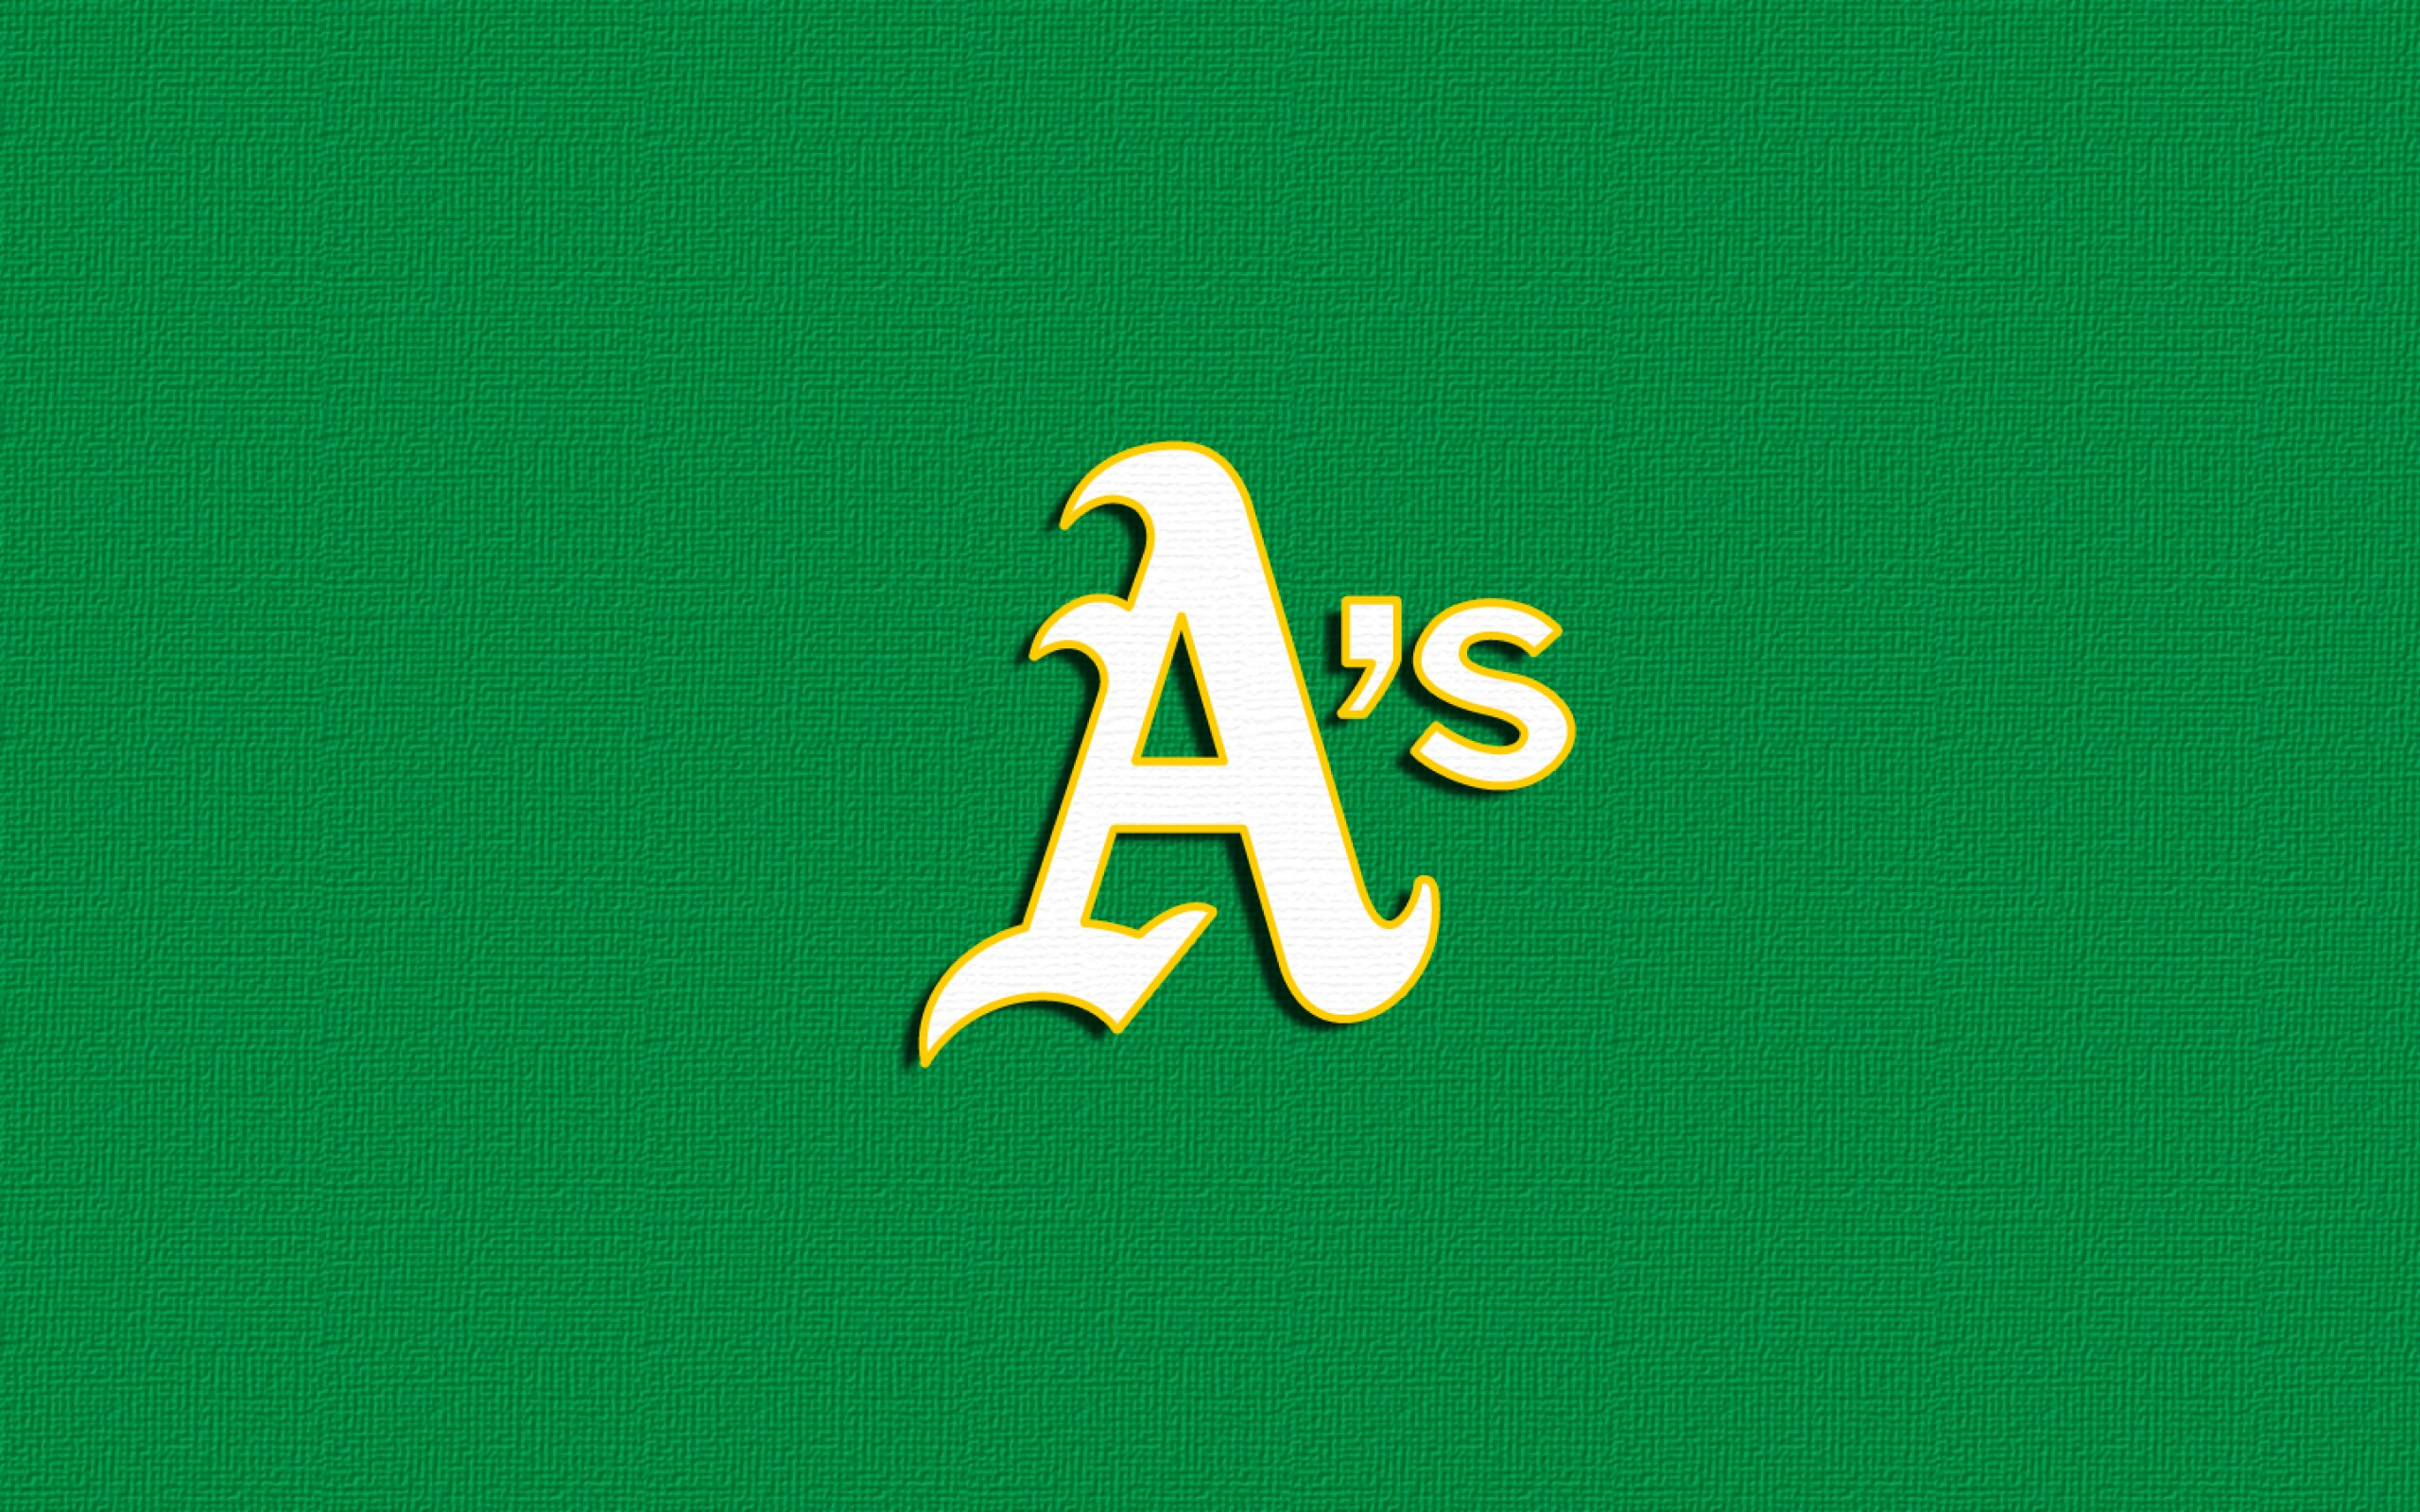 2560x1600 - Oakland Athletics Wallpapers 21